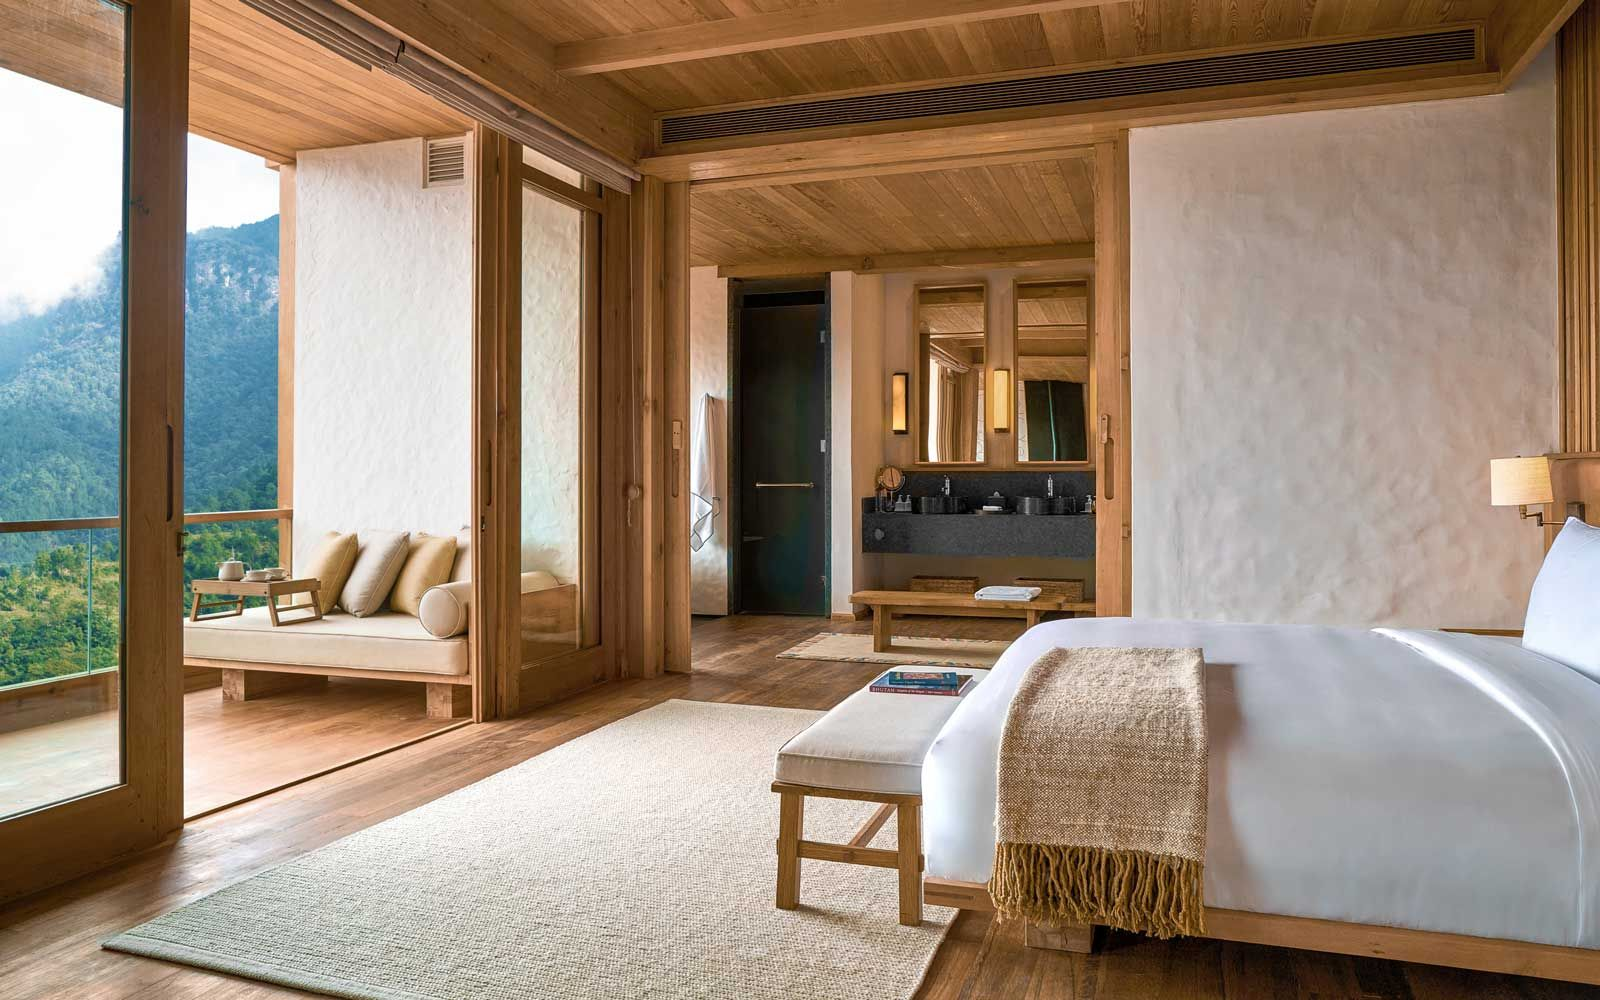 The Top 8 Hotel Brands in the World  Hotel interiors, Hotel room